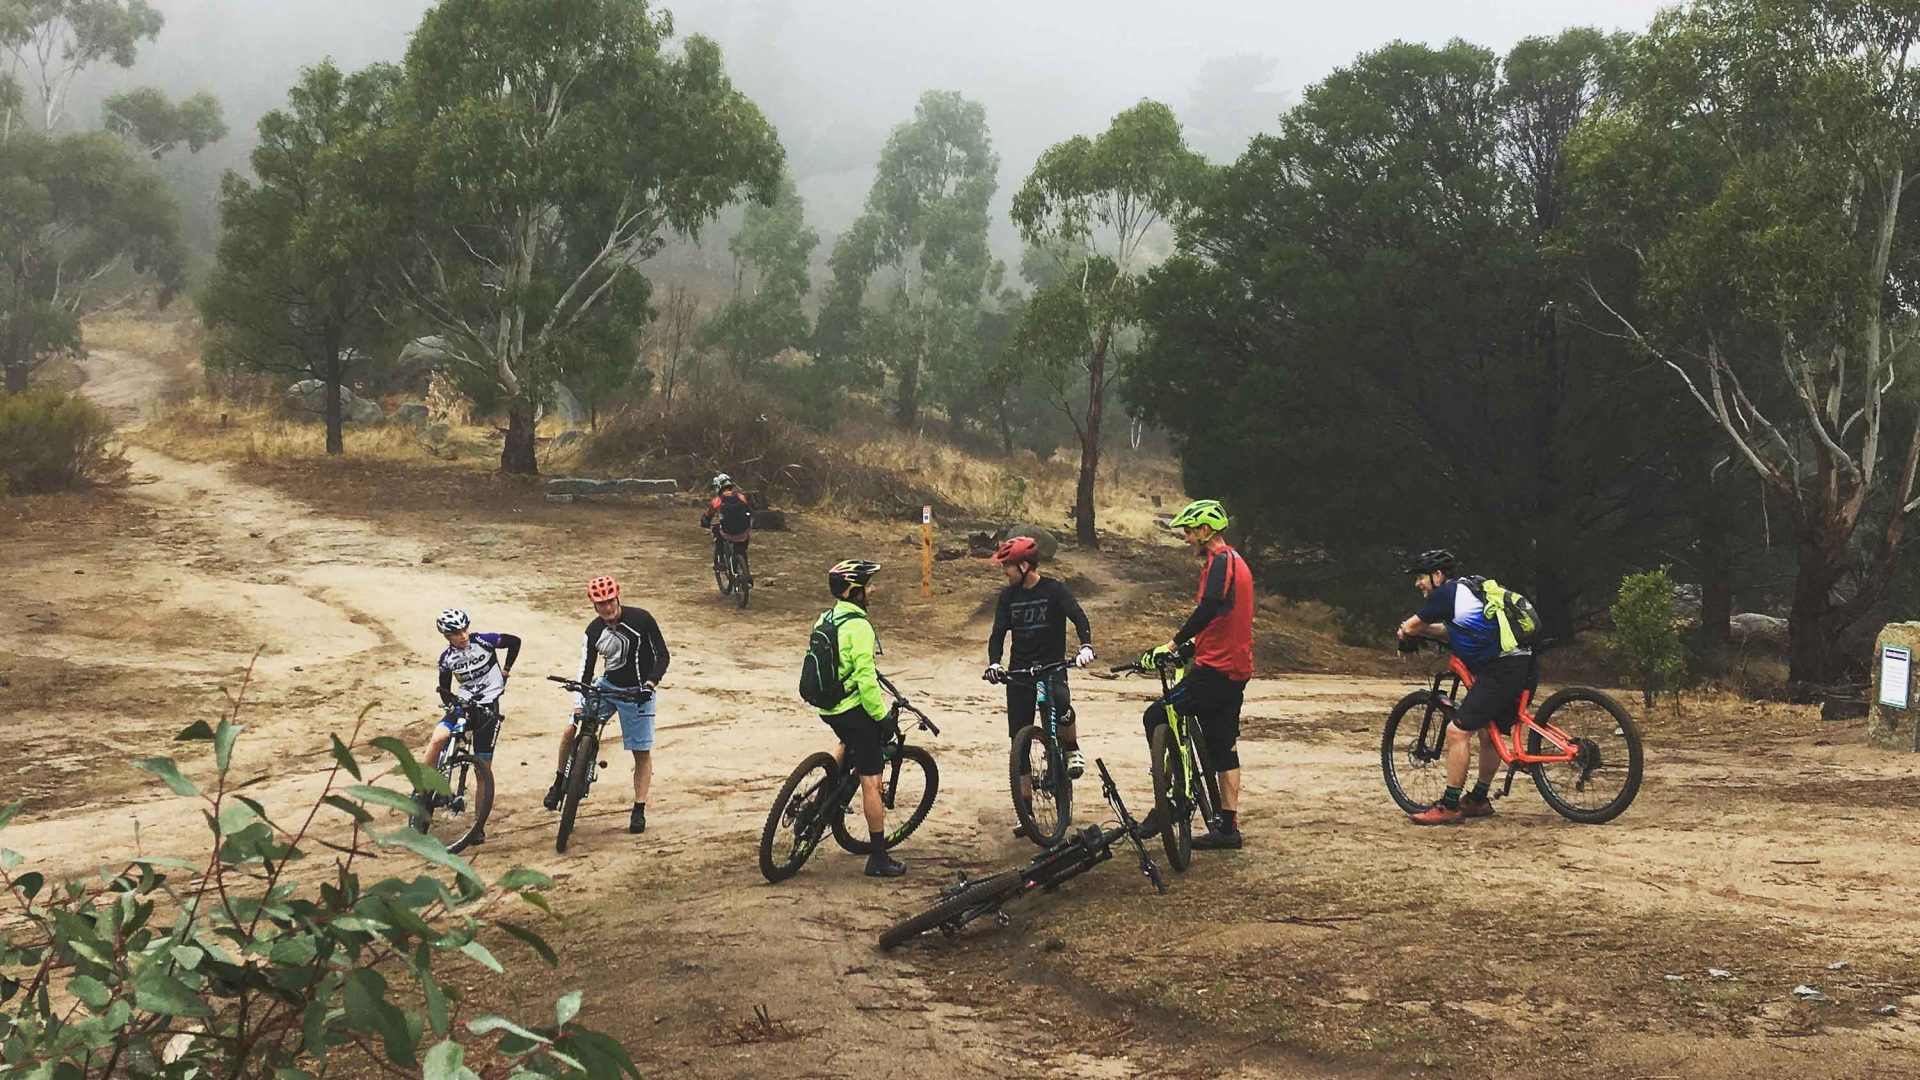 Mountain bikers gather together on one of the trails in Harcourt, Australia.